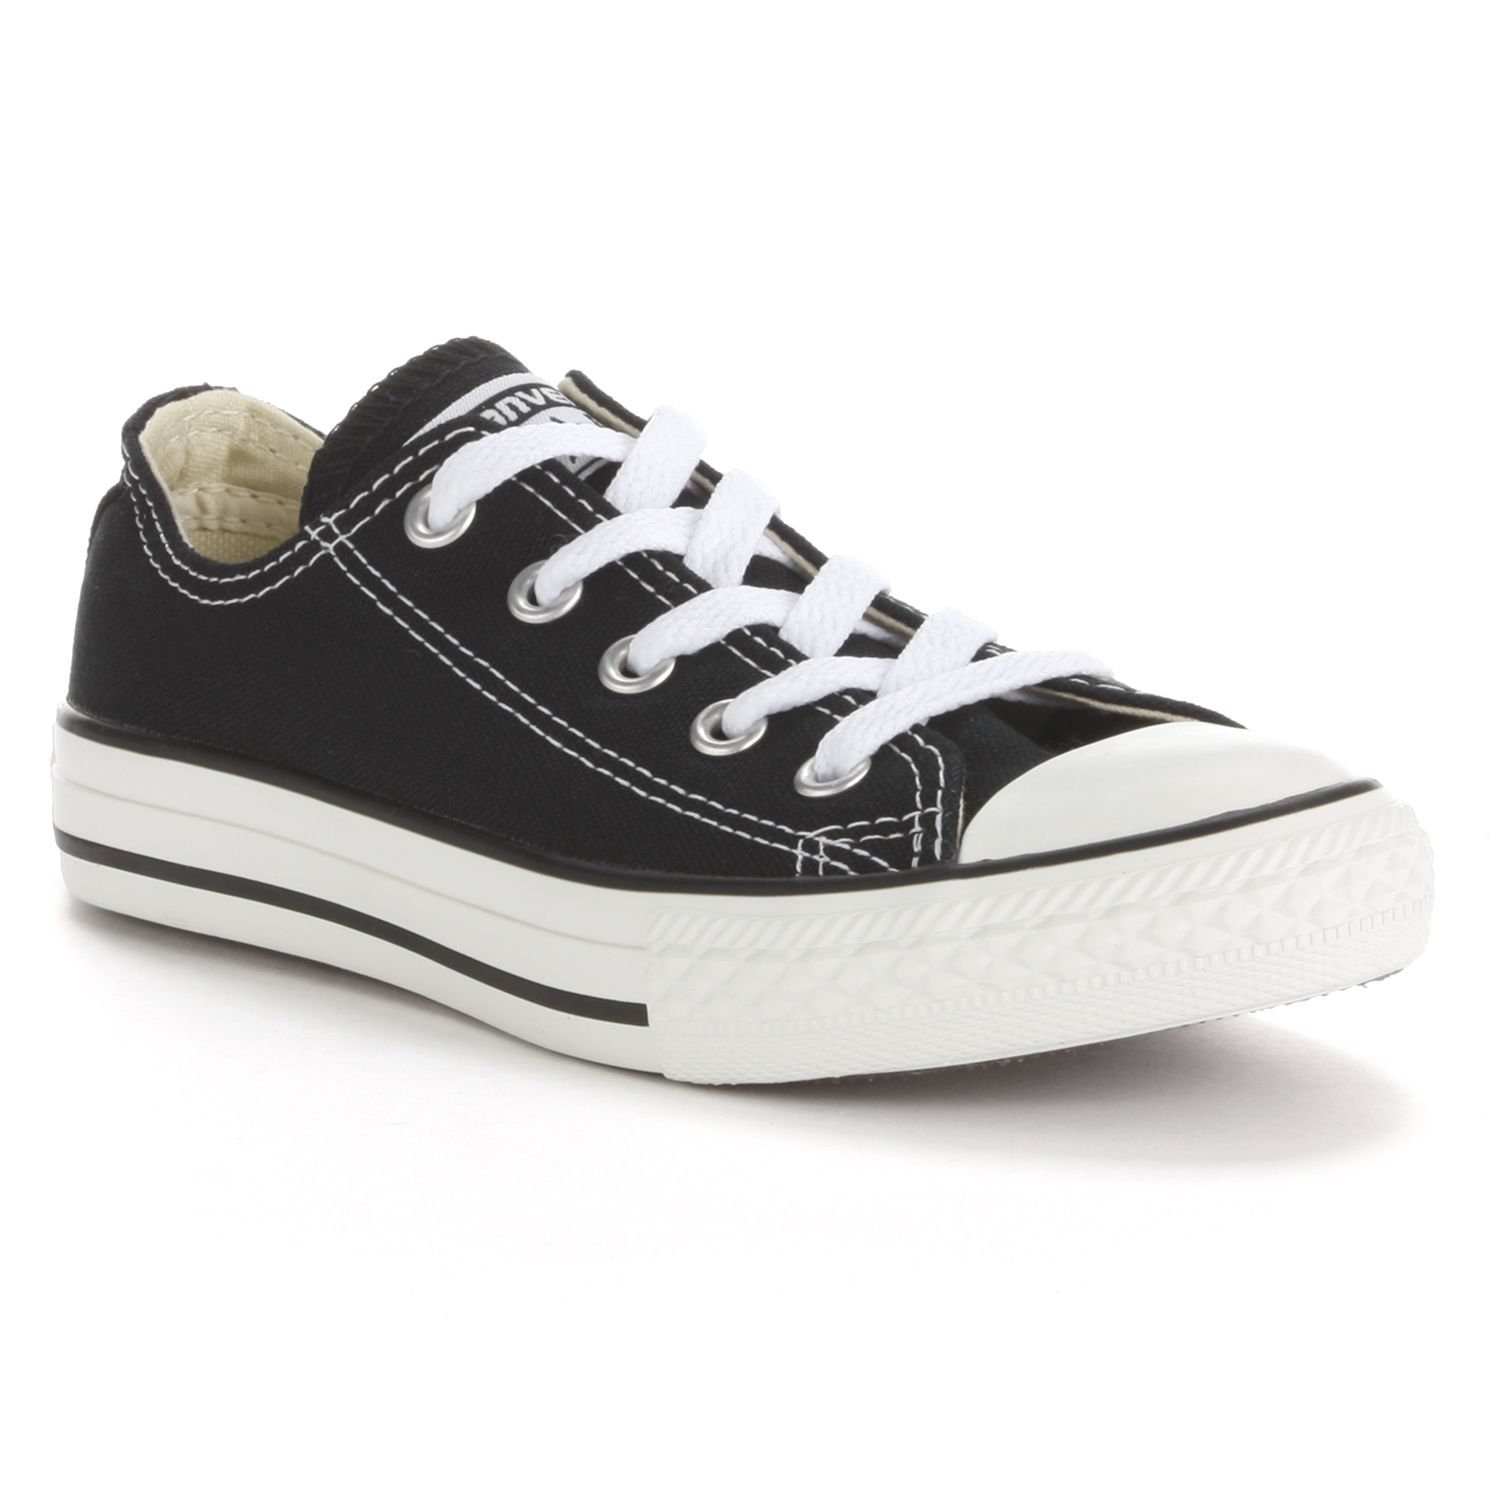 converse clothing, shoes \u0026 accessories kohl\u0027s  kid\u0027s converse chuck taylor all star sneakers